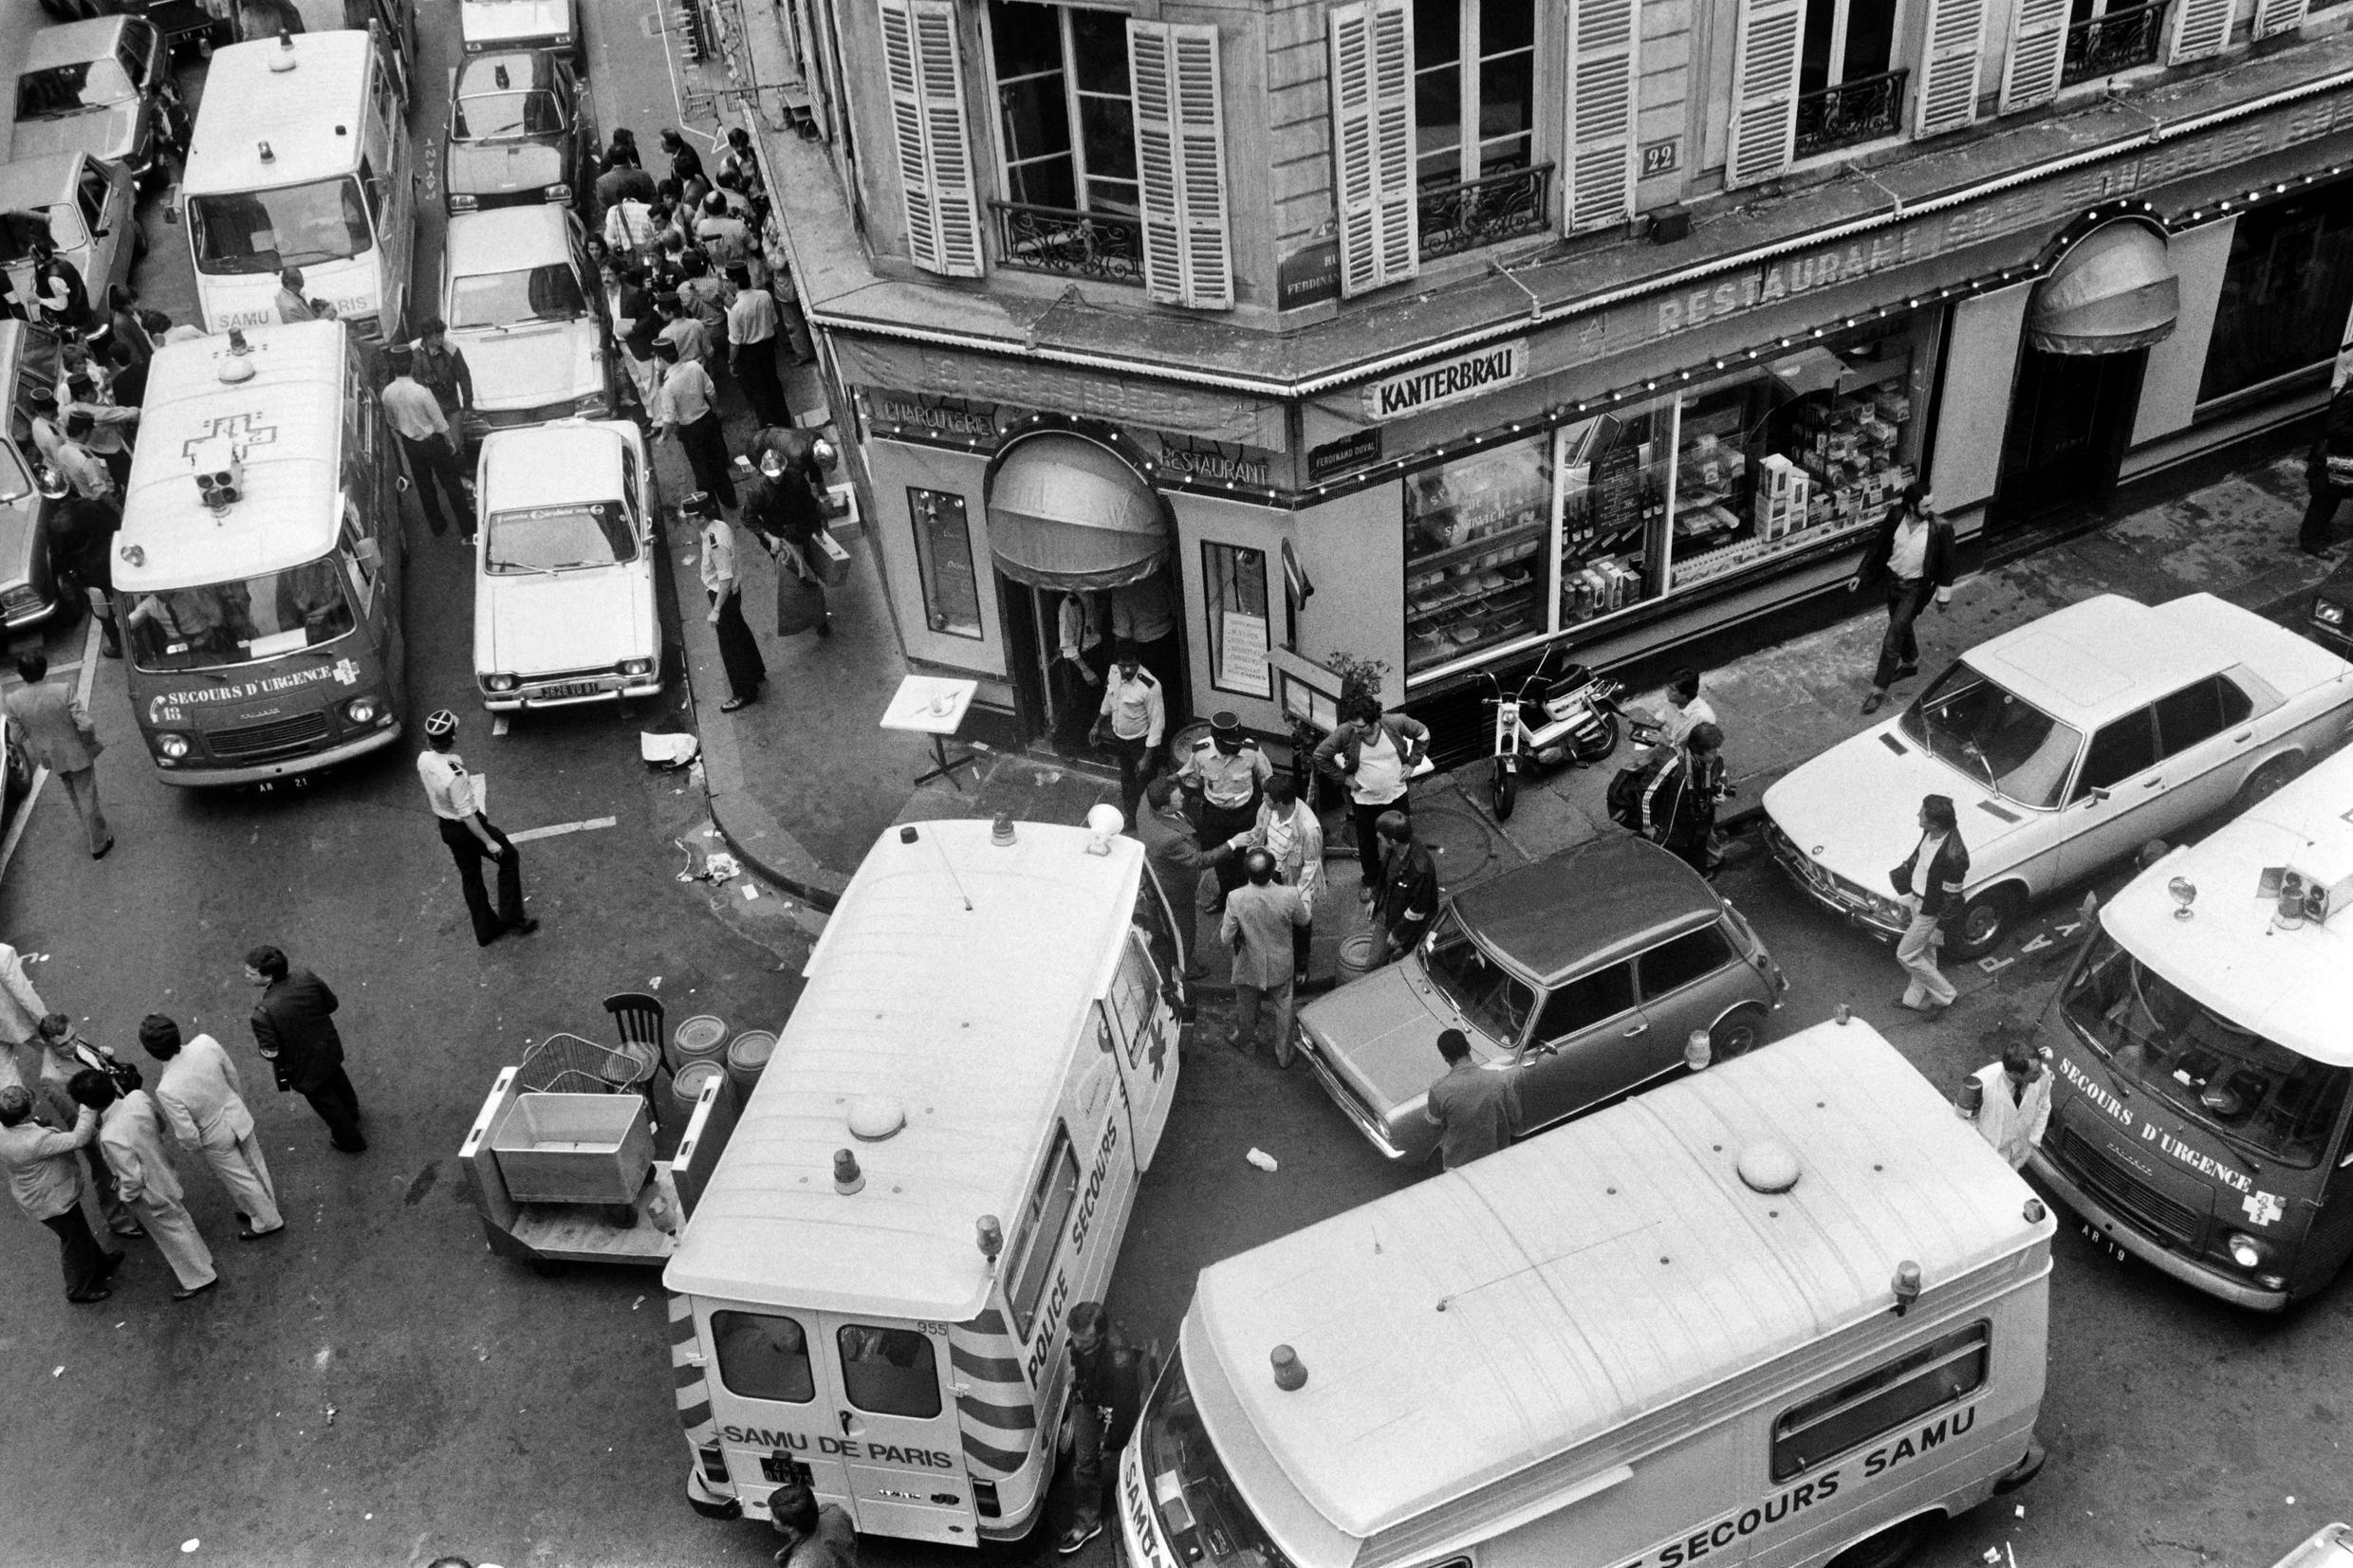 On August 9, 1982, armed men attacked a Jewish restaurant on Rue des Rosiers in Paris, killing six people and injuring 22 others.